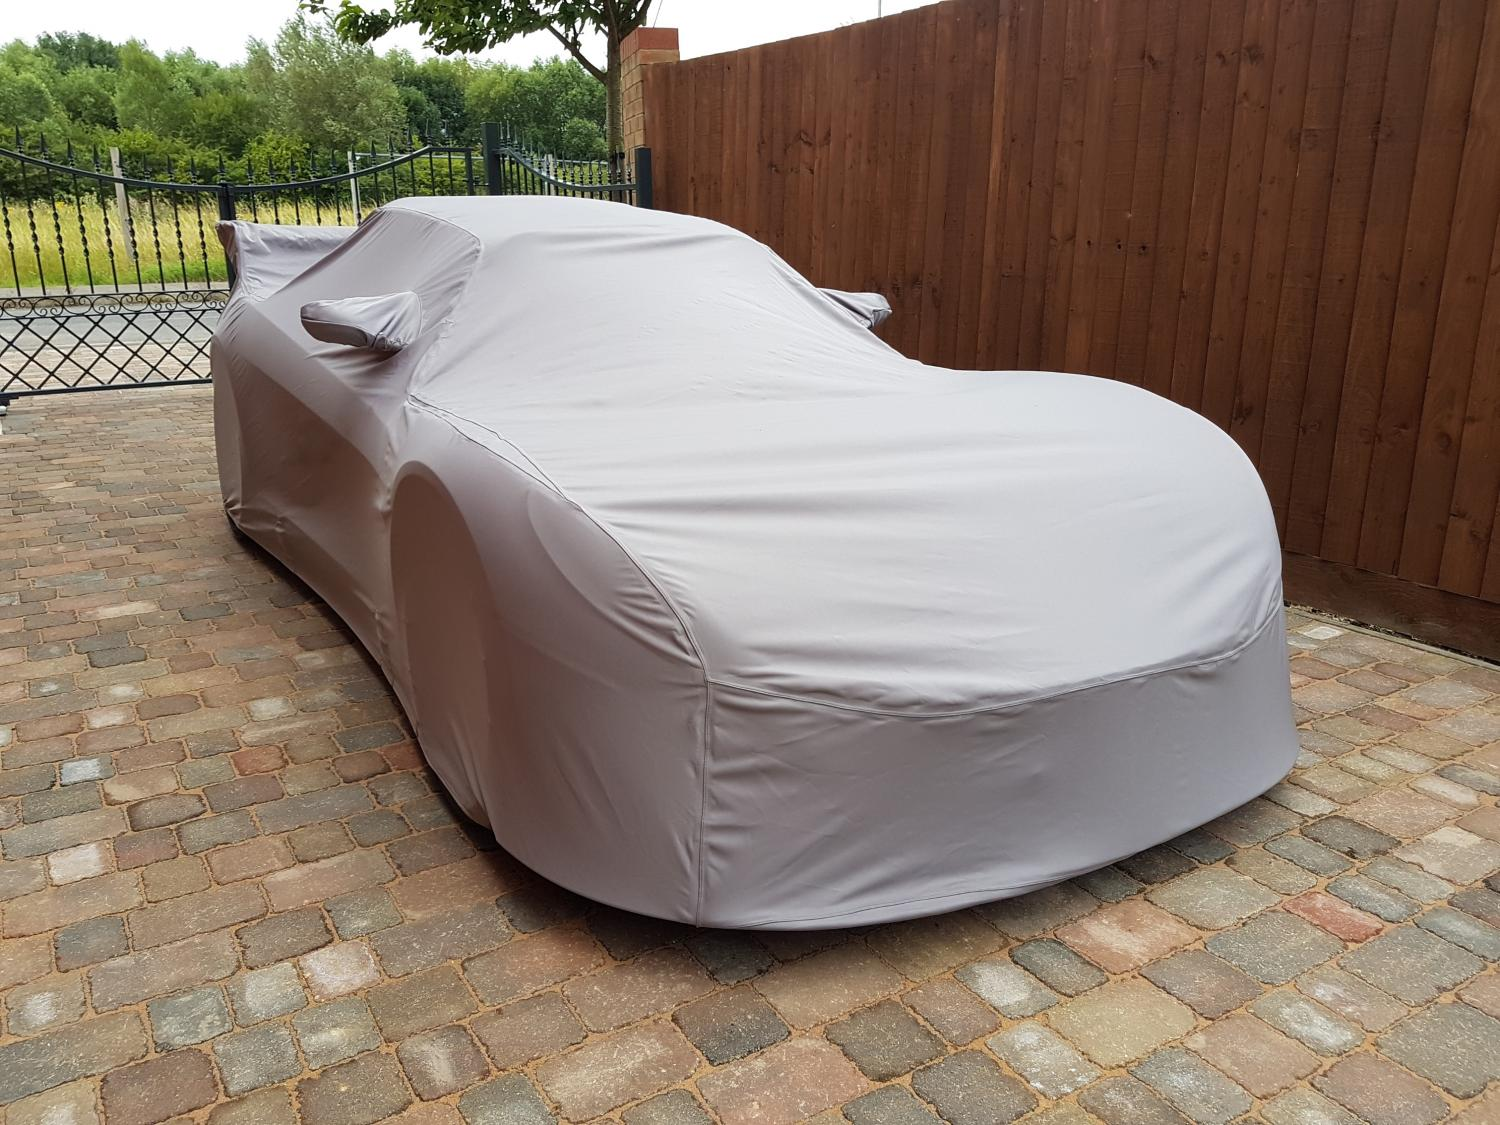 Fitted Outrdoor Waterproof Car Cover for Alfa Romeo Brera Spider Coupe 2005on